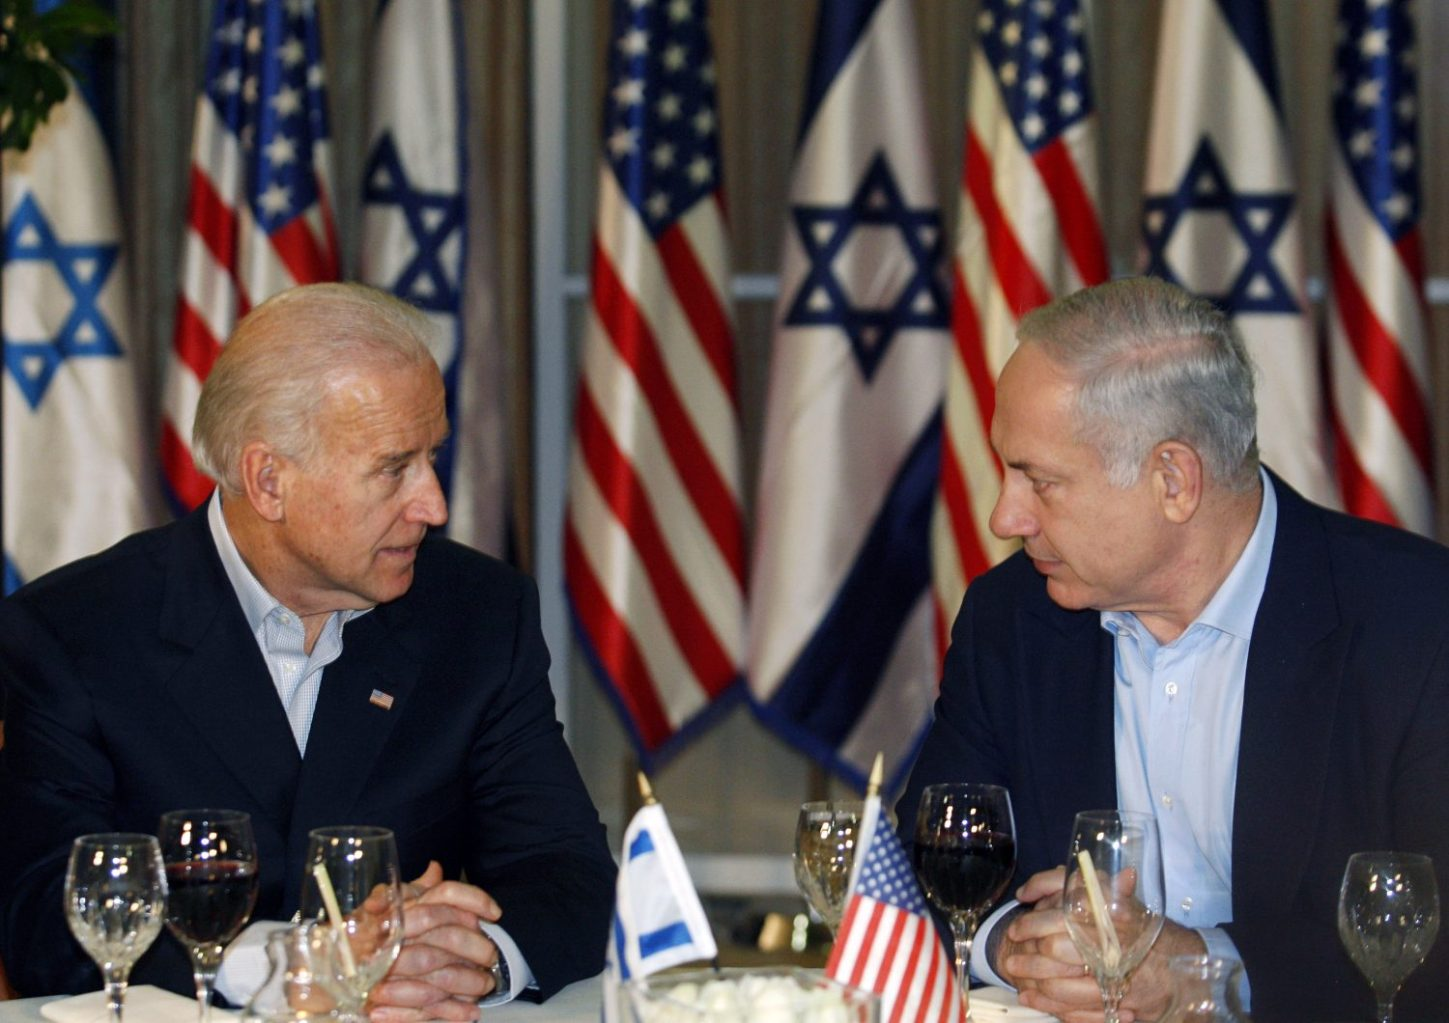 A Biden Victory in the U.S. Election Could Both Harm and Help Israel's  Netanyahu